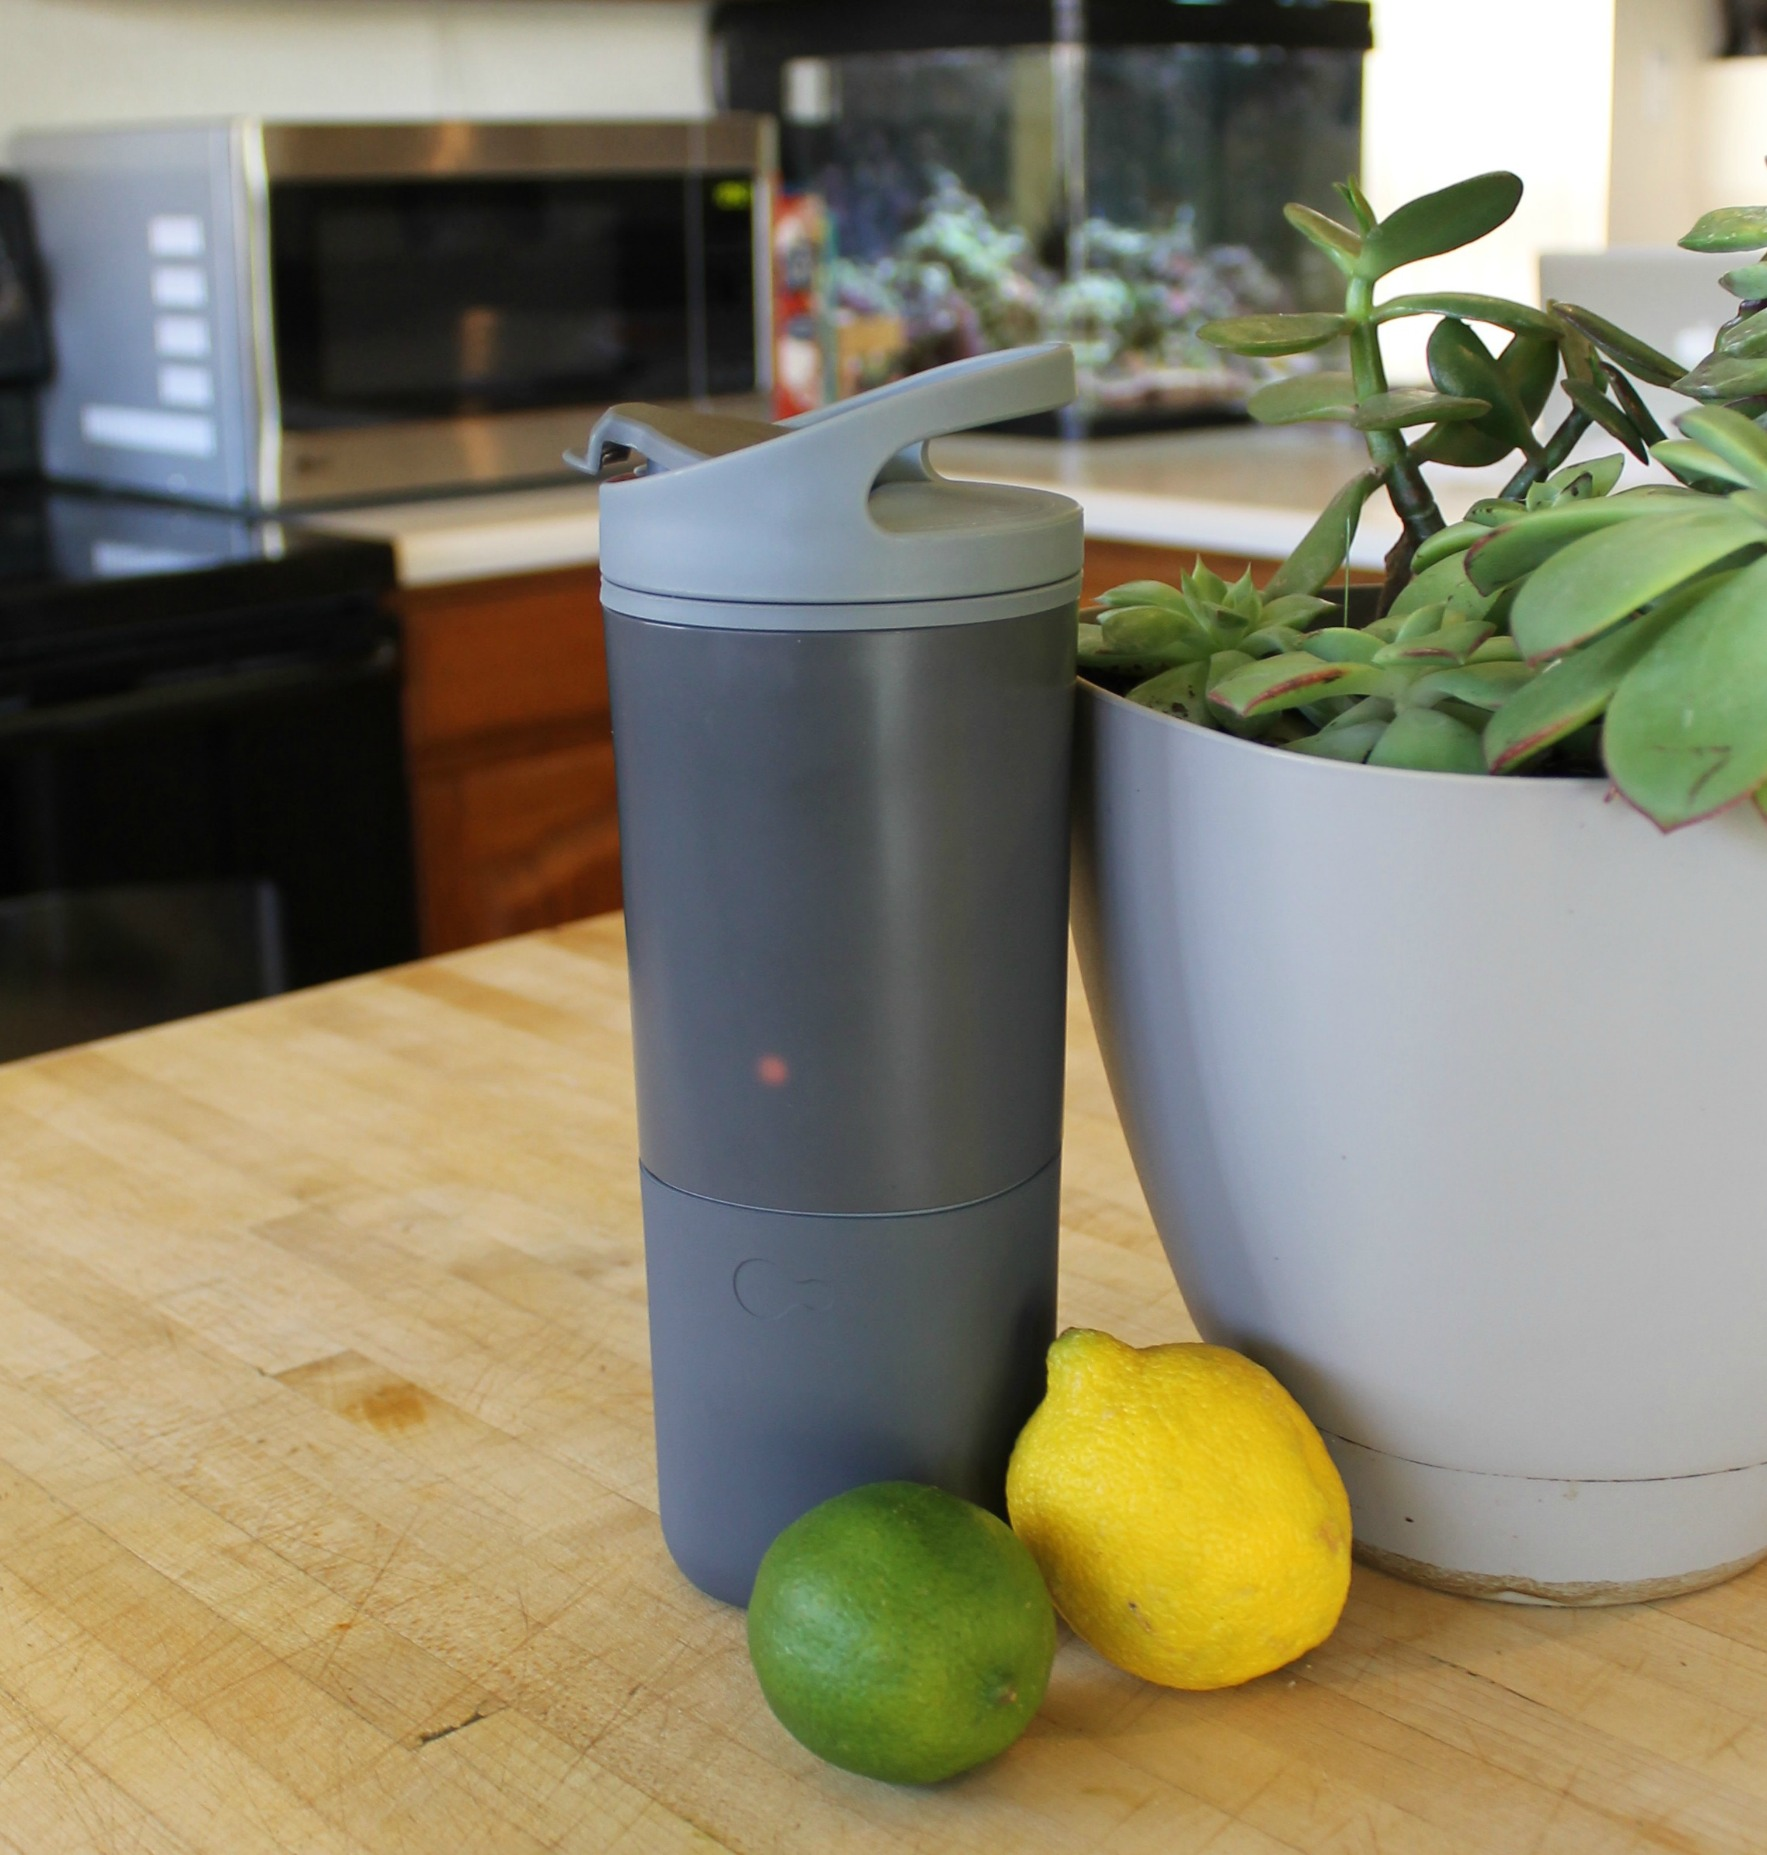 Ozmo Smart Cups Tracks your Coffee and Water Intake